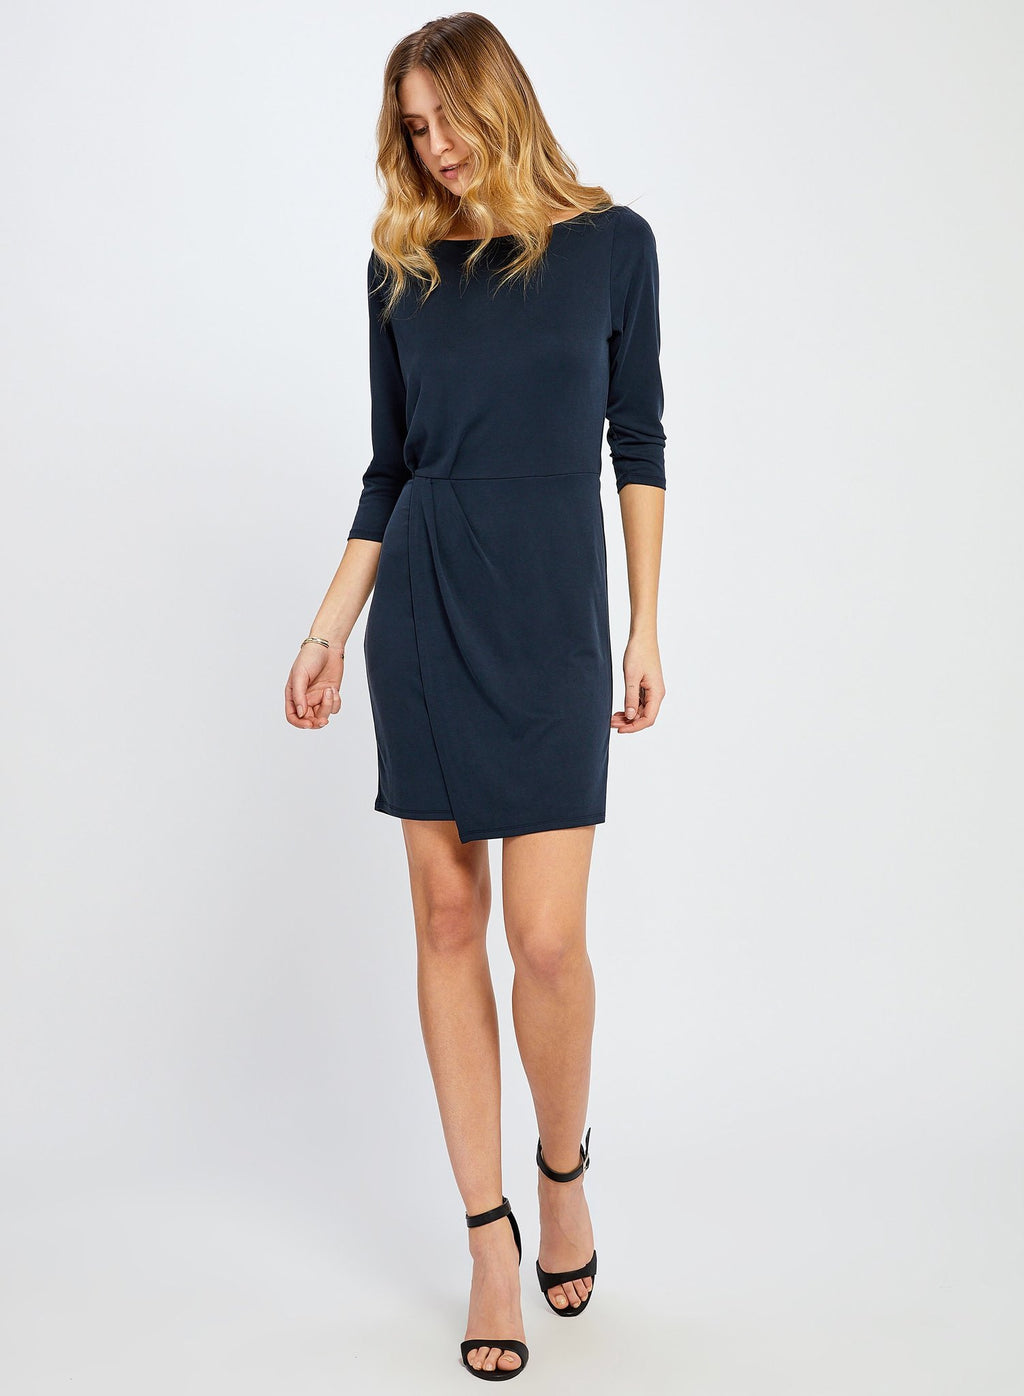 Christelle Dress